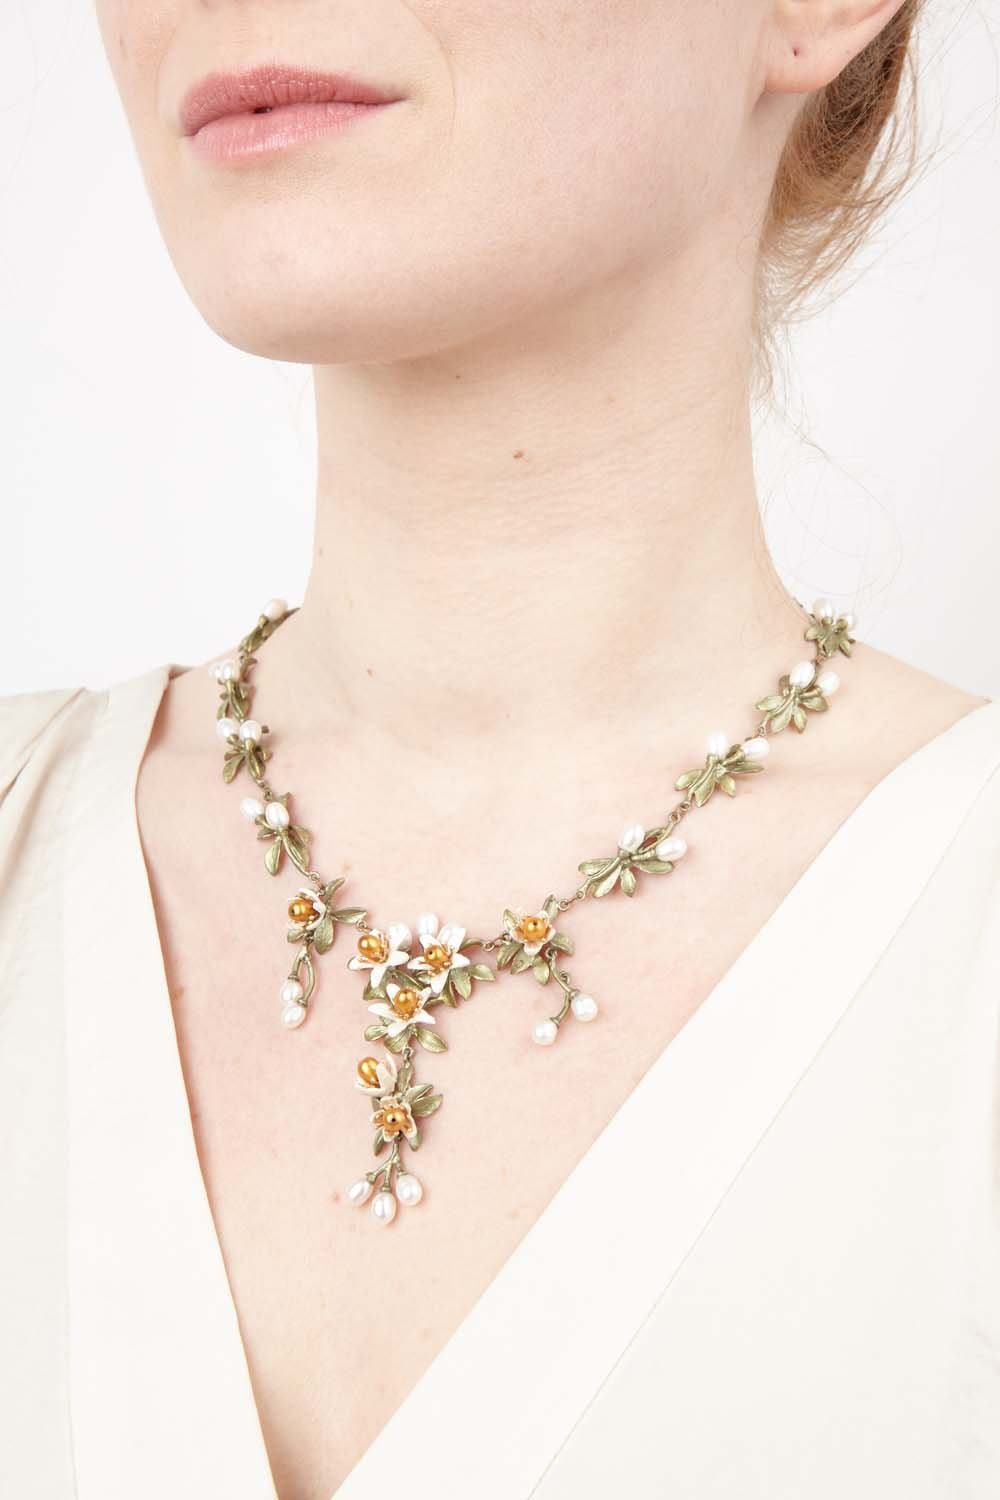 Orange Blossom Necklace - Flowers